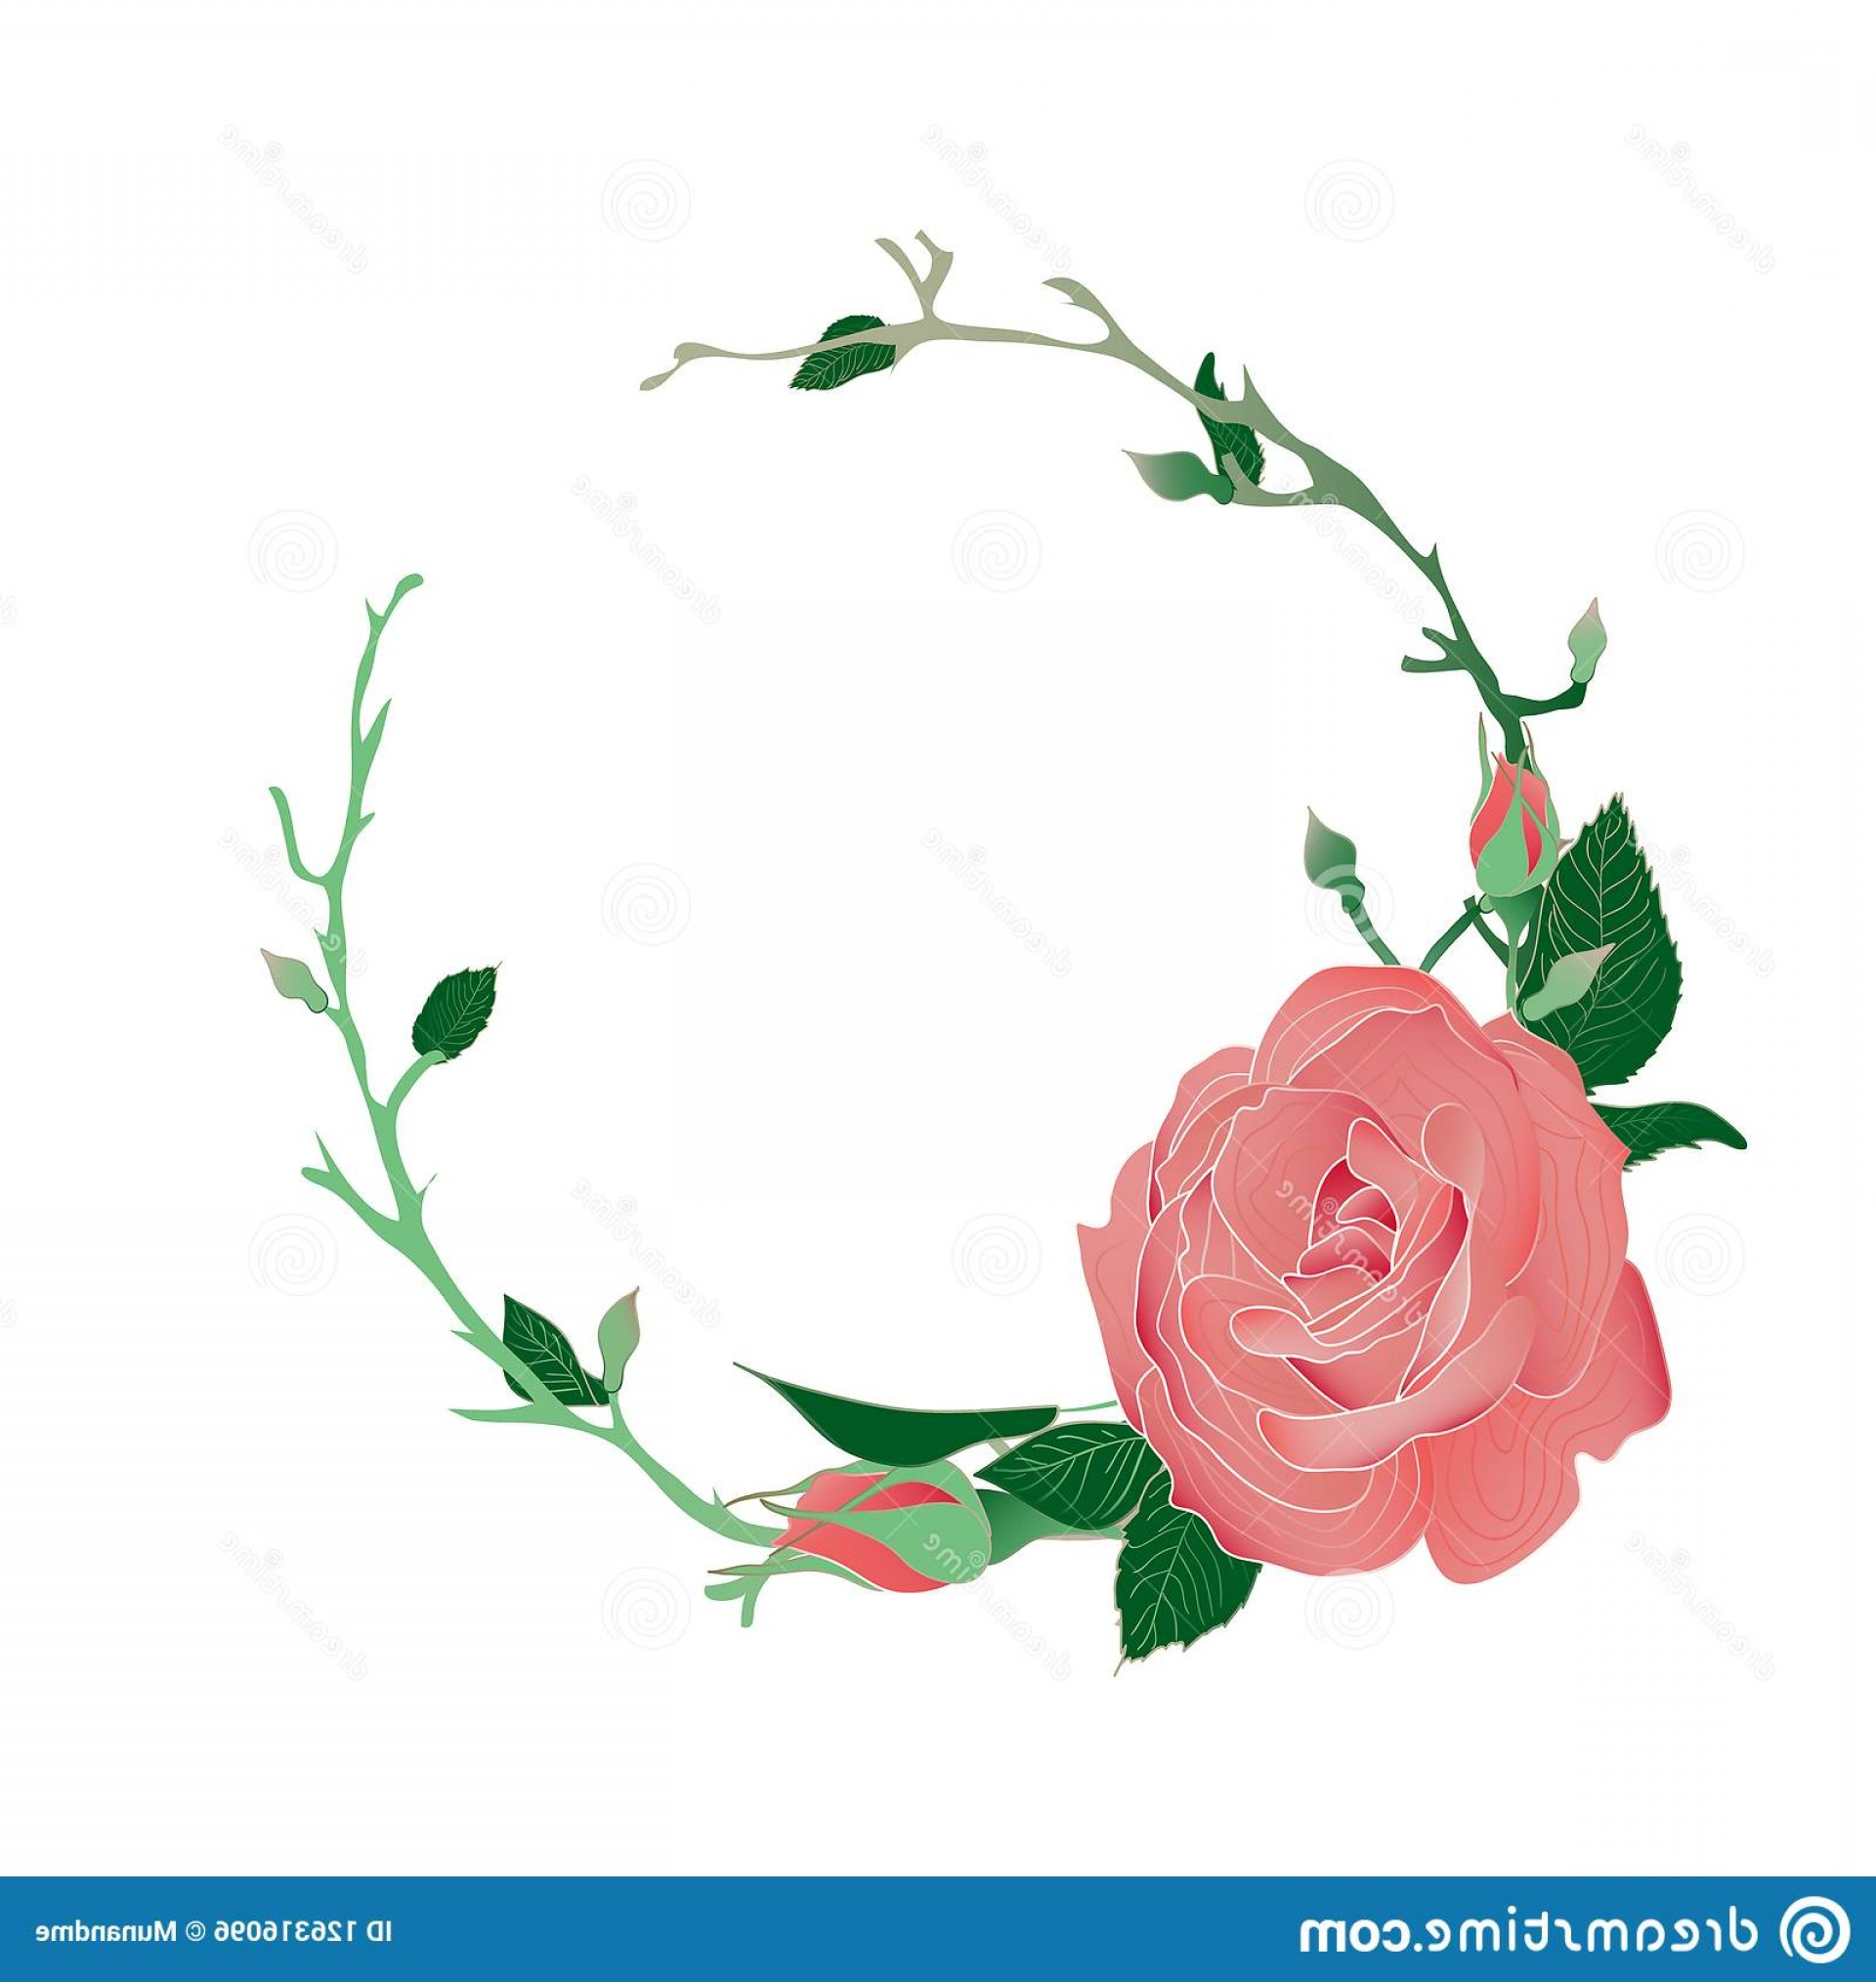 Vector Image Of A Budding Flower: Blooming Budding Pink Rose Flowers Leaves Wreath Blooming Budding Pink Rose Flowers Wreath Image